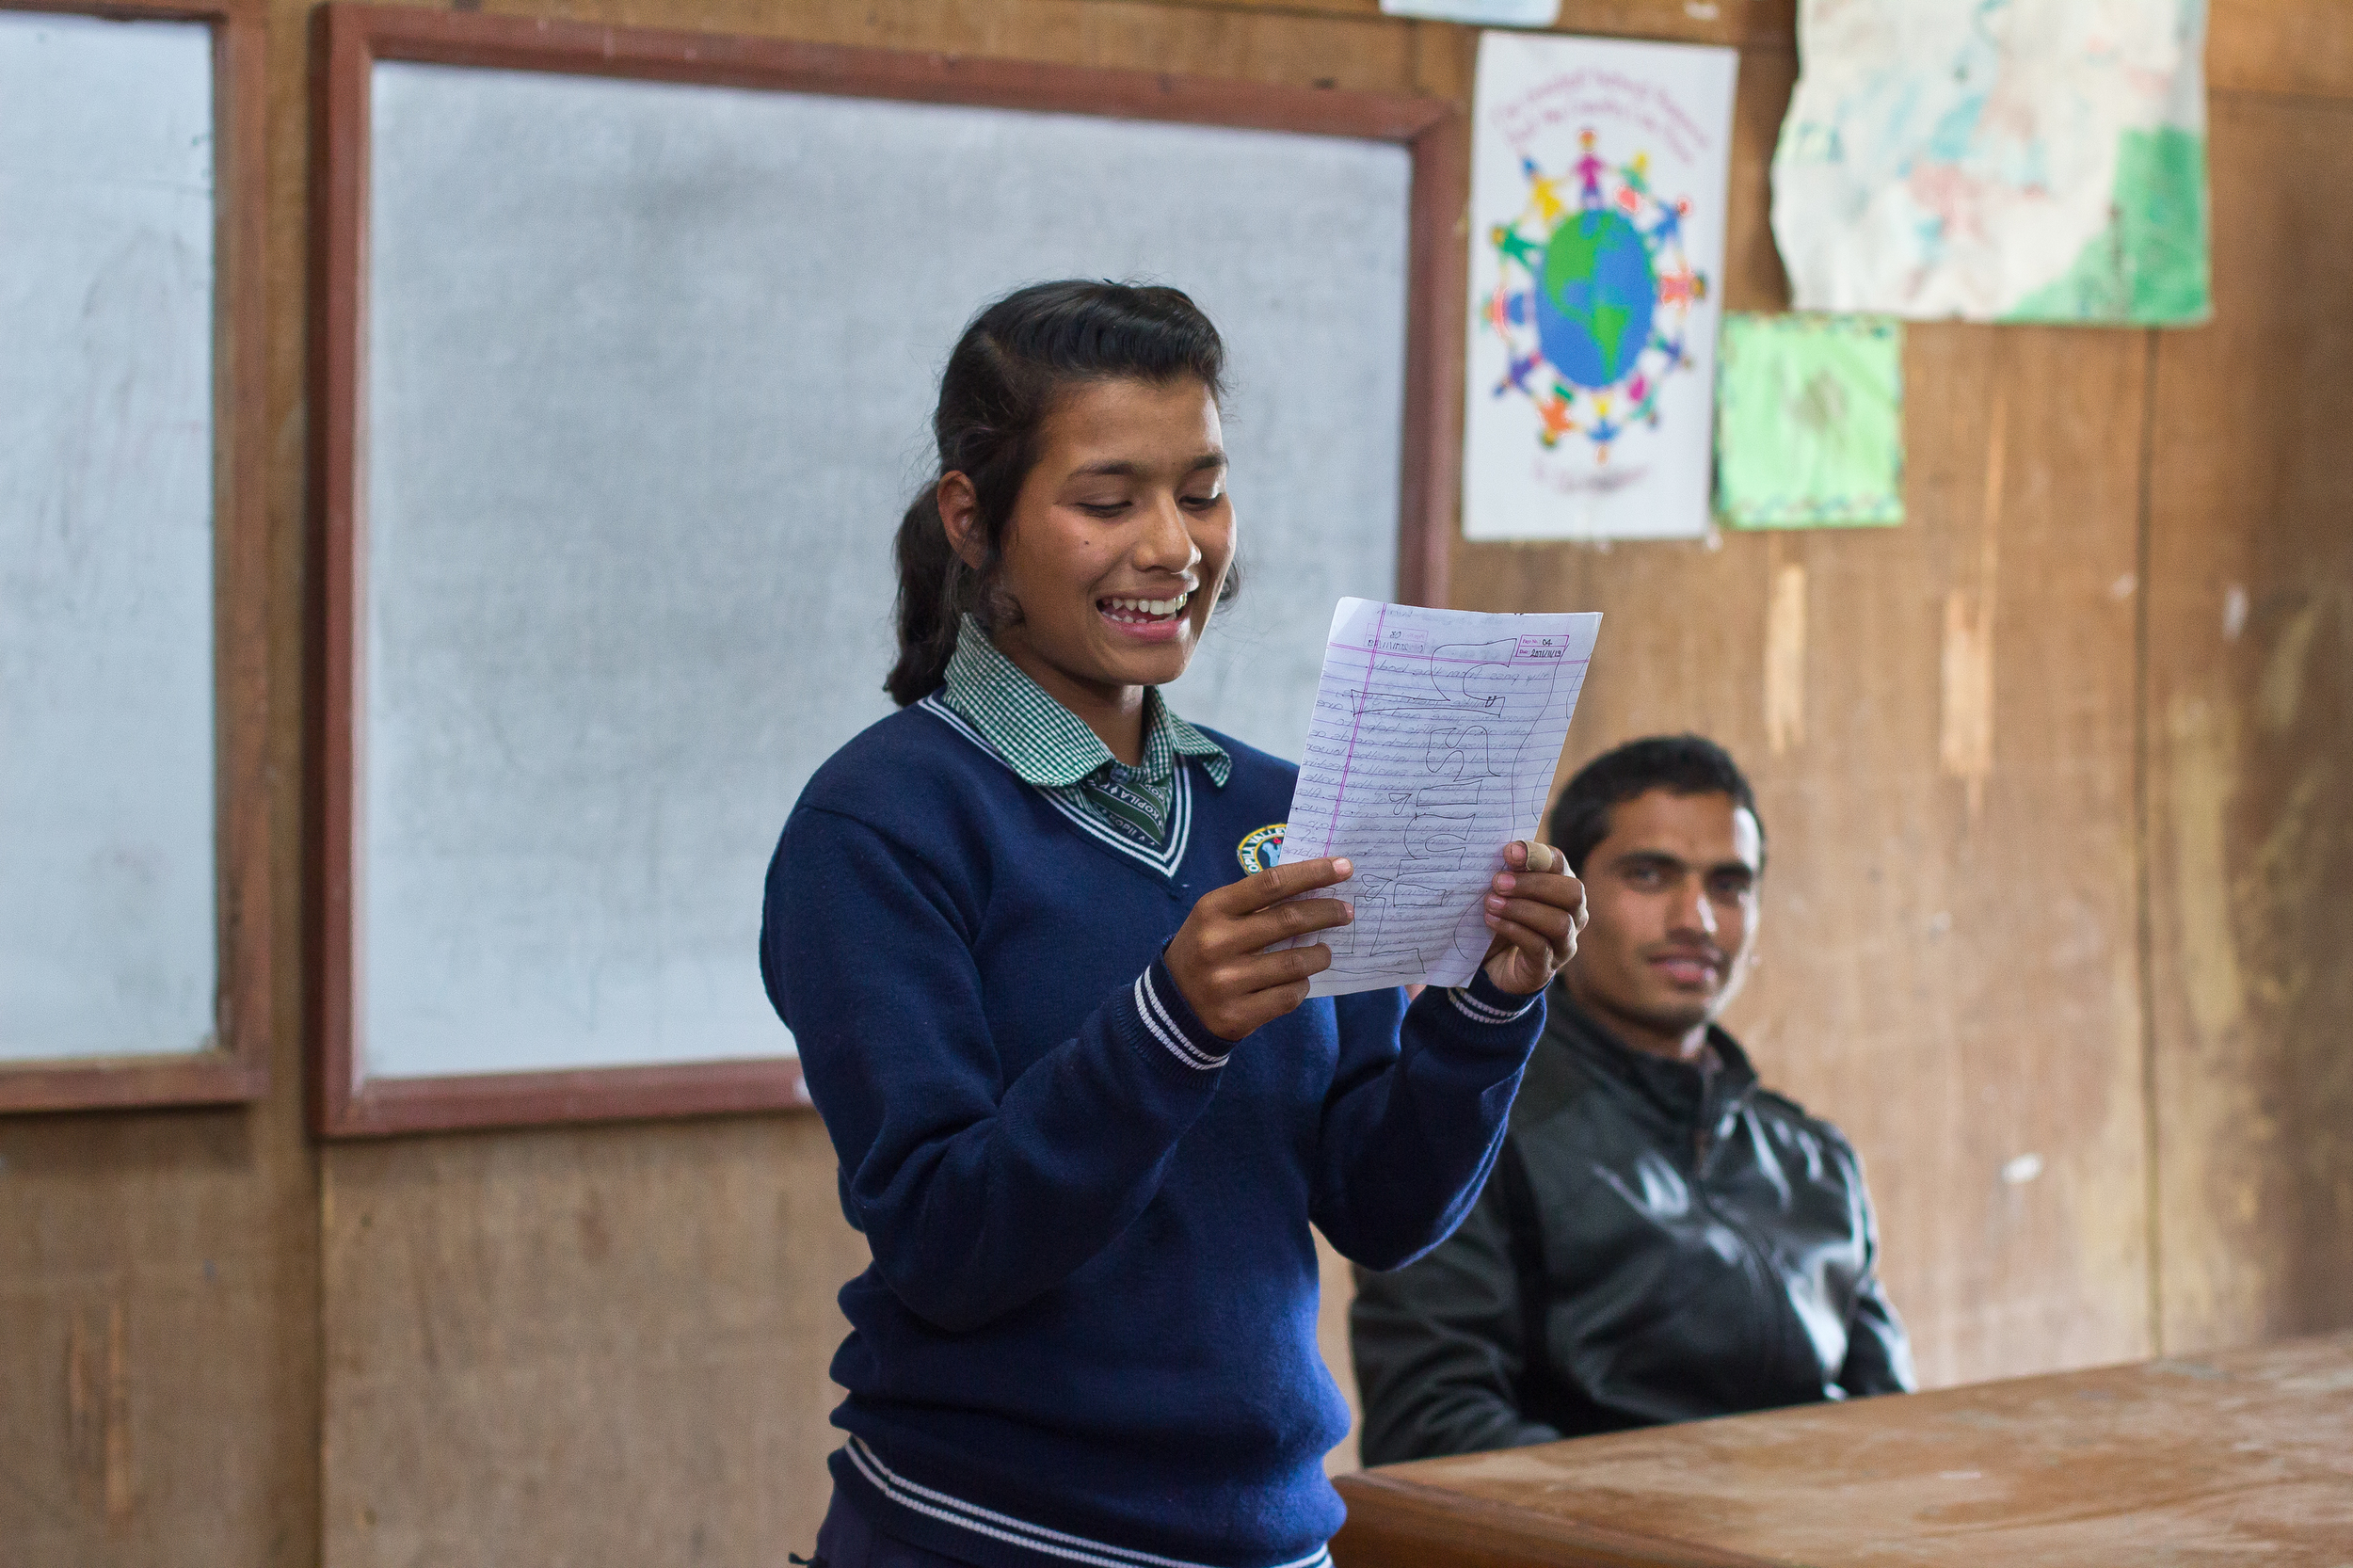 She's the First Scholar Kamala S. presents to her eighth grade class in Nepal, March 2015. (photo by Kate Lord)